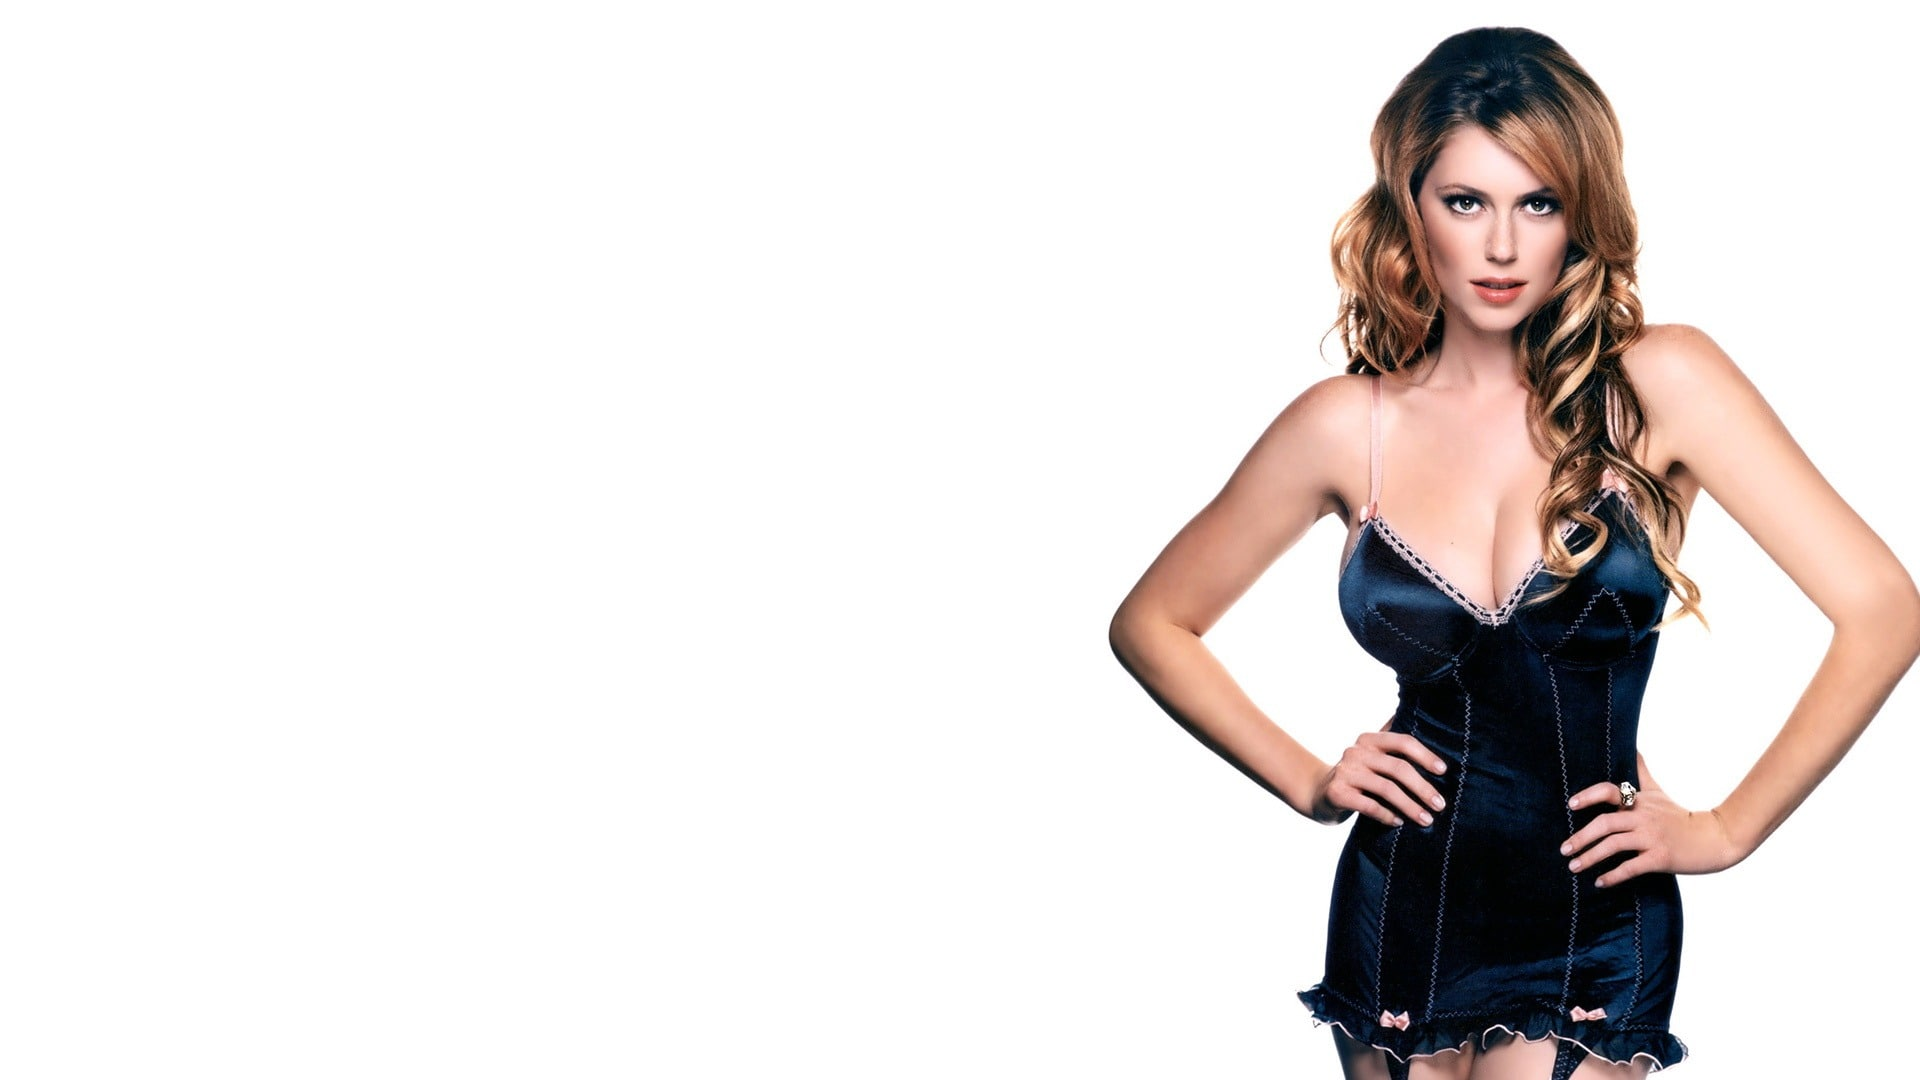 diora baird pic wallpapers - photo #3